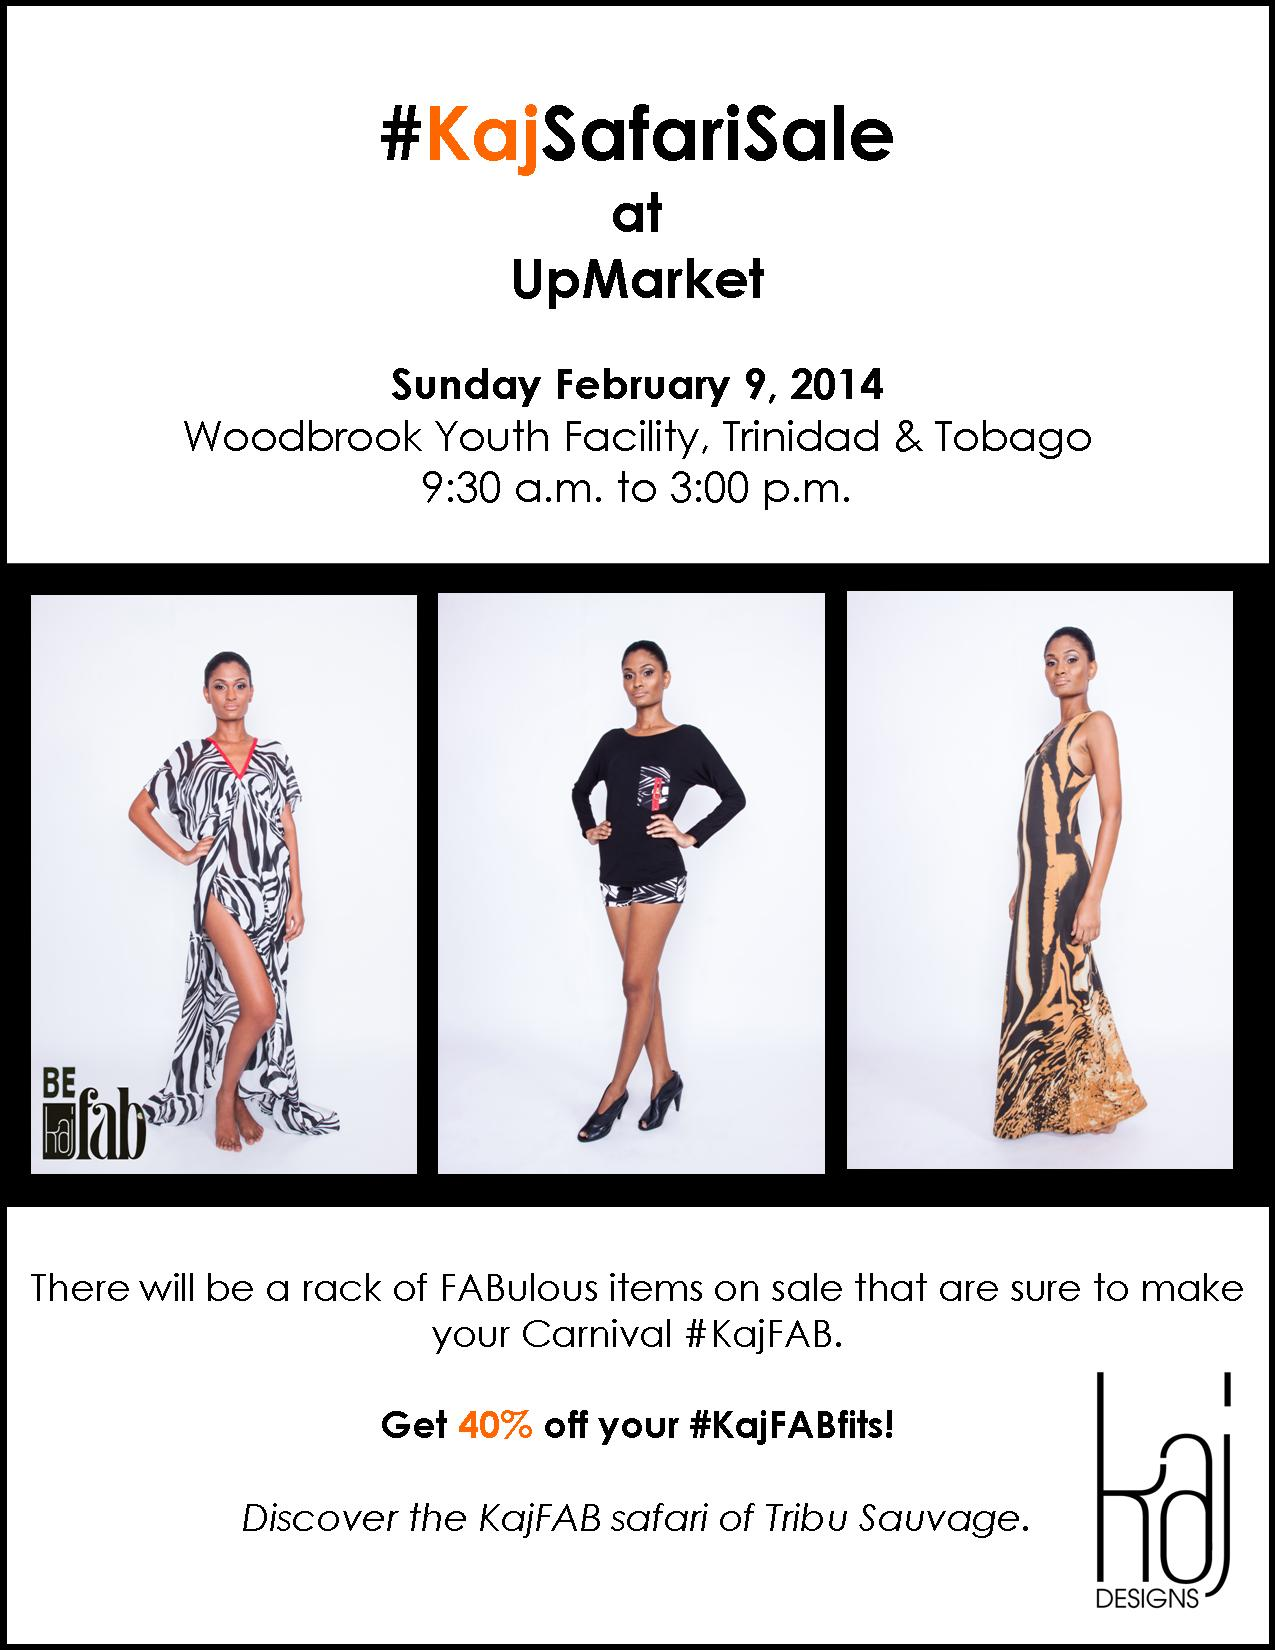 #KajSafariSale at UpMarket - Sun Feb 9, 2014